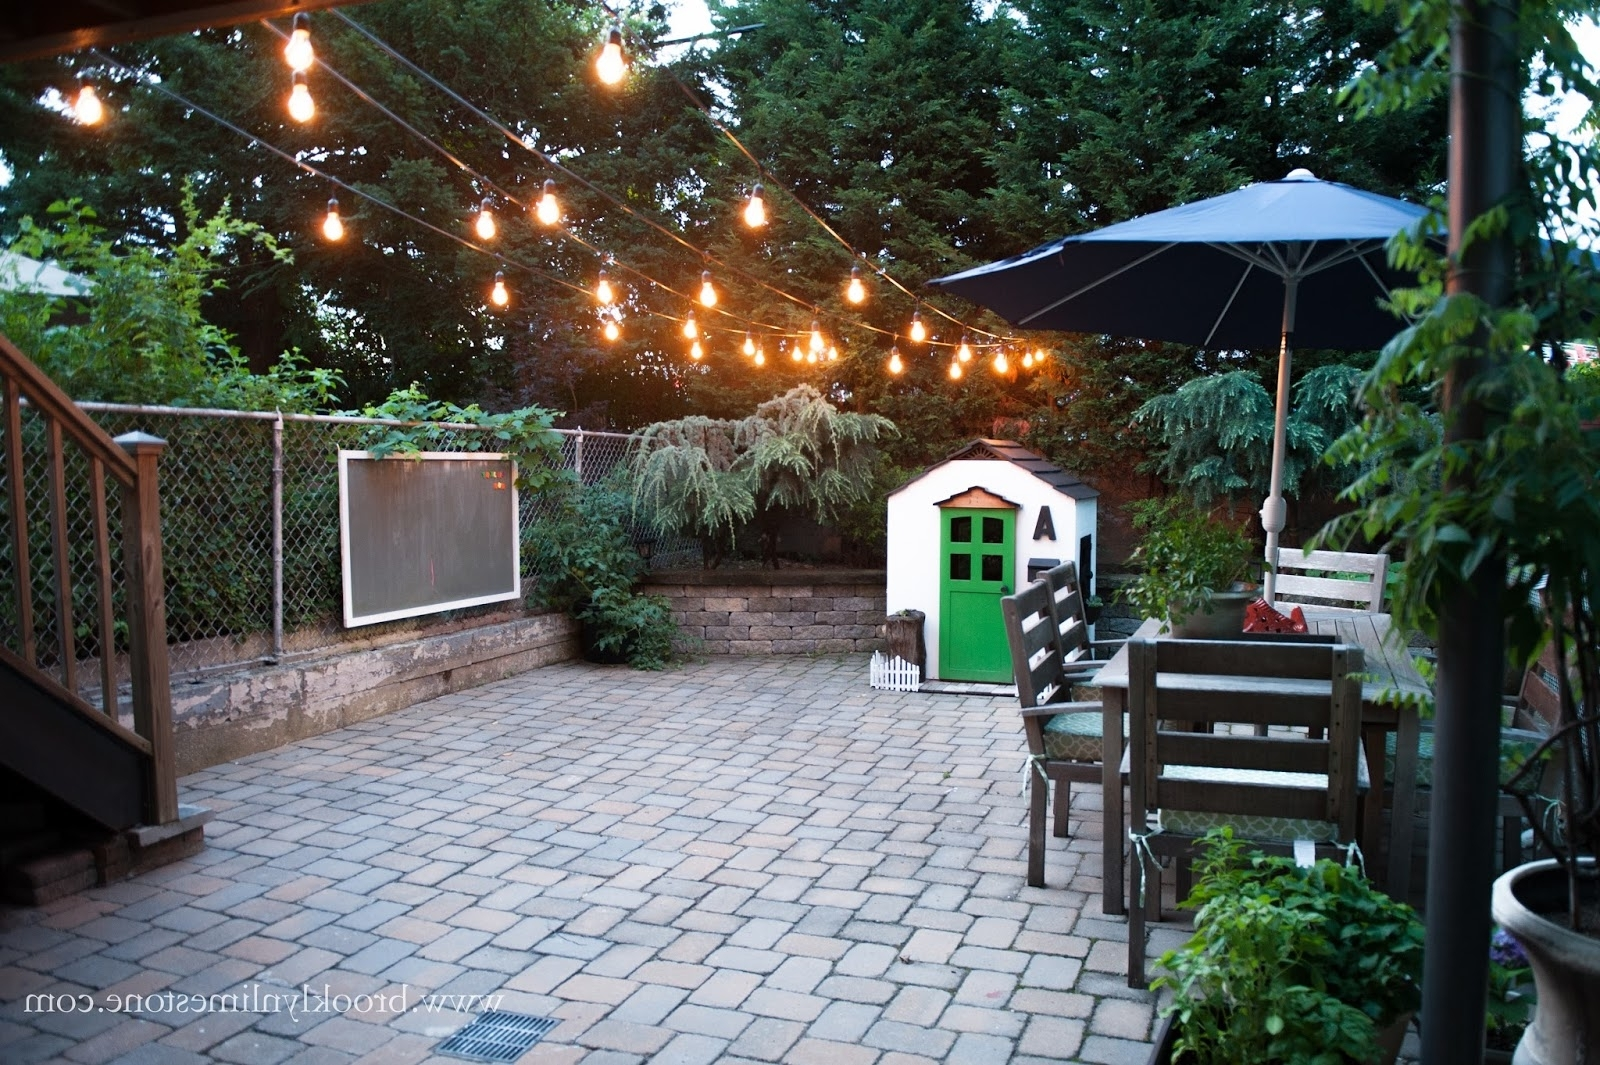 [%Incridible Hanging String Lights Outdoors For Backyardlights%b%%bof With Regard To 2018 Outdoor Patio Hanging String Lights|Outdoor Patio Hanging String Lights With Most Recent Incridible Hanging String Lights Outdoors For Backyardlights%b%%bof|Well Known Outdoor Patio Hanging String Lights Intended For Incridible Hanging String Lights Outdoors For Backyardlights%b%%bof|Preferred Incridible Hanging String Lights Outdoors For Backyardlights%b%%bof With Regard To Outdoor Patio Hanging String Lights%] (View 9 of 20)